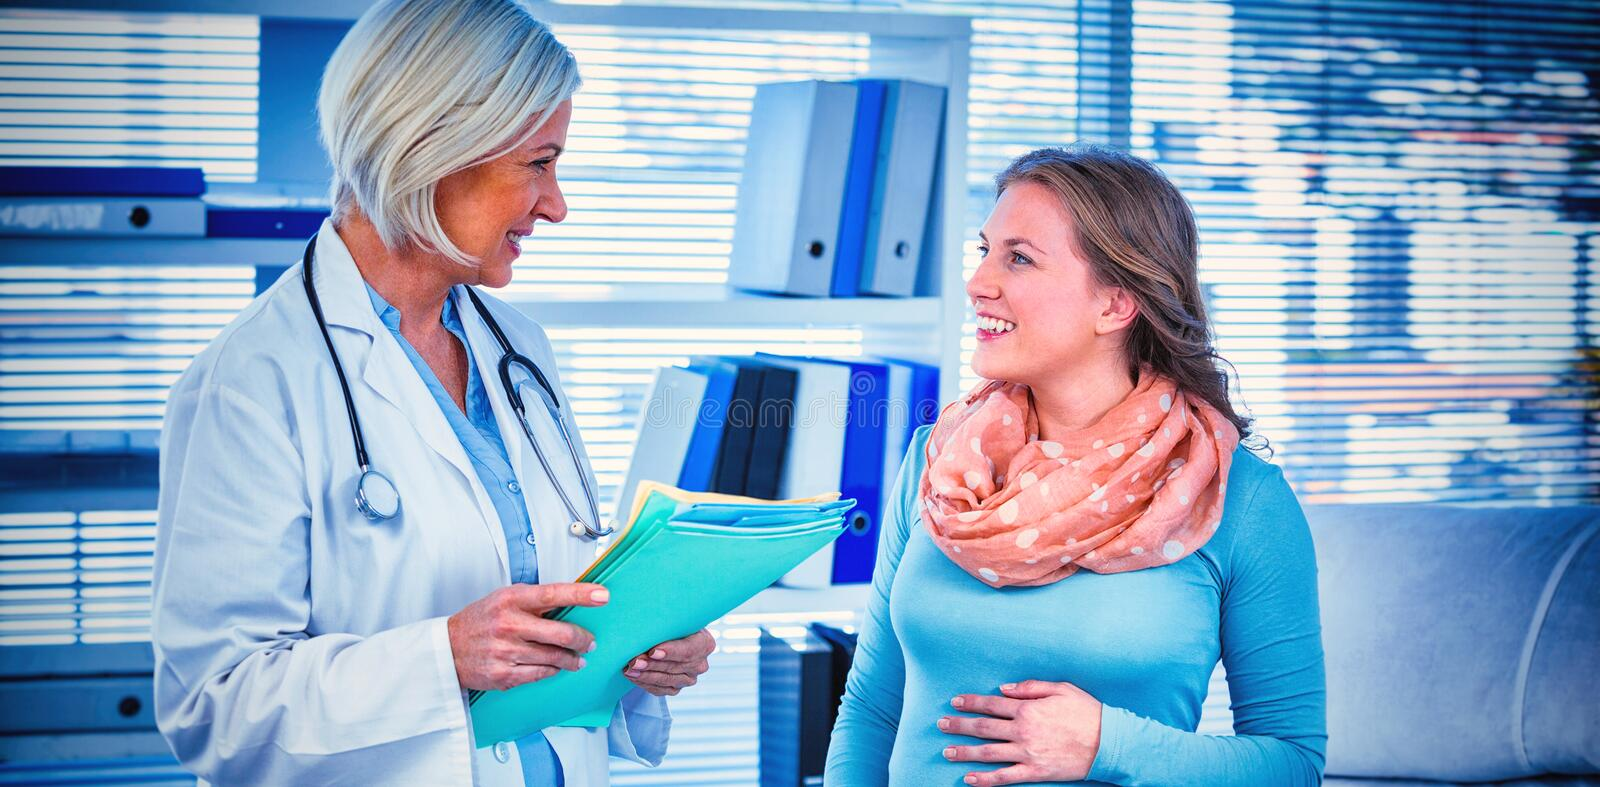 Pregnant patient consulting a doctor royalty free stock photo